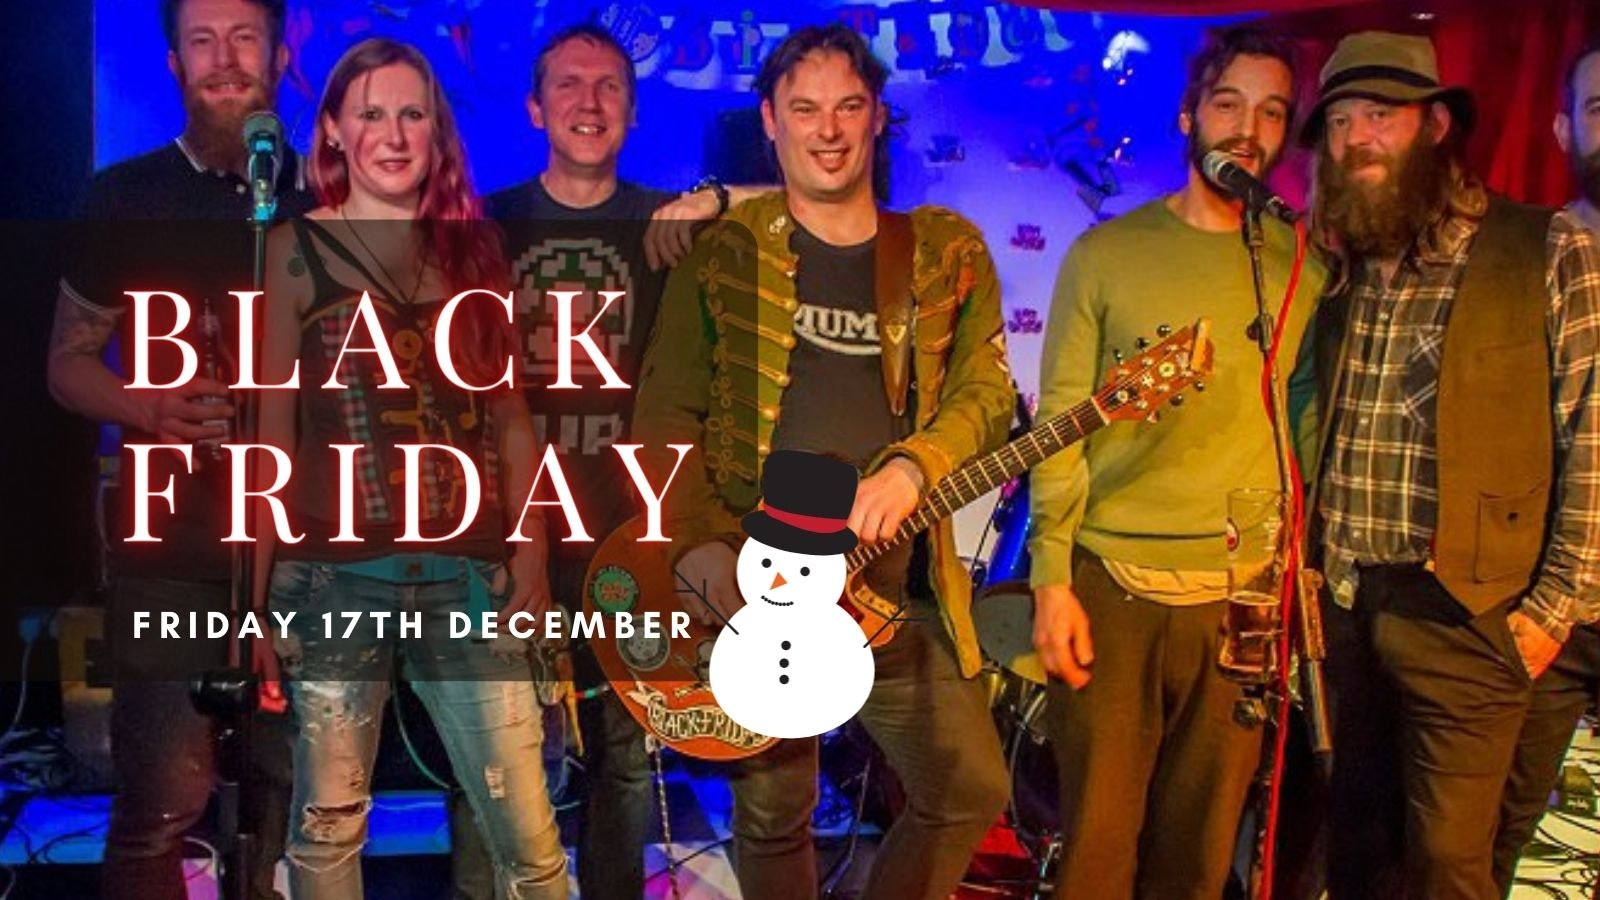 BLACK FRIDAY   Plymouth, Annabel's Cabaret & Discotheque